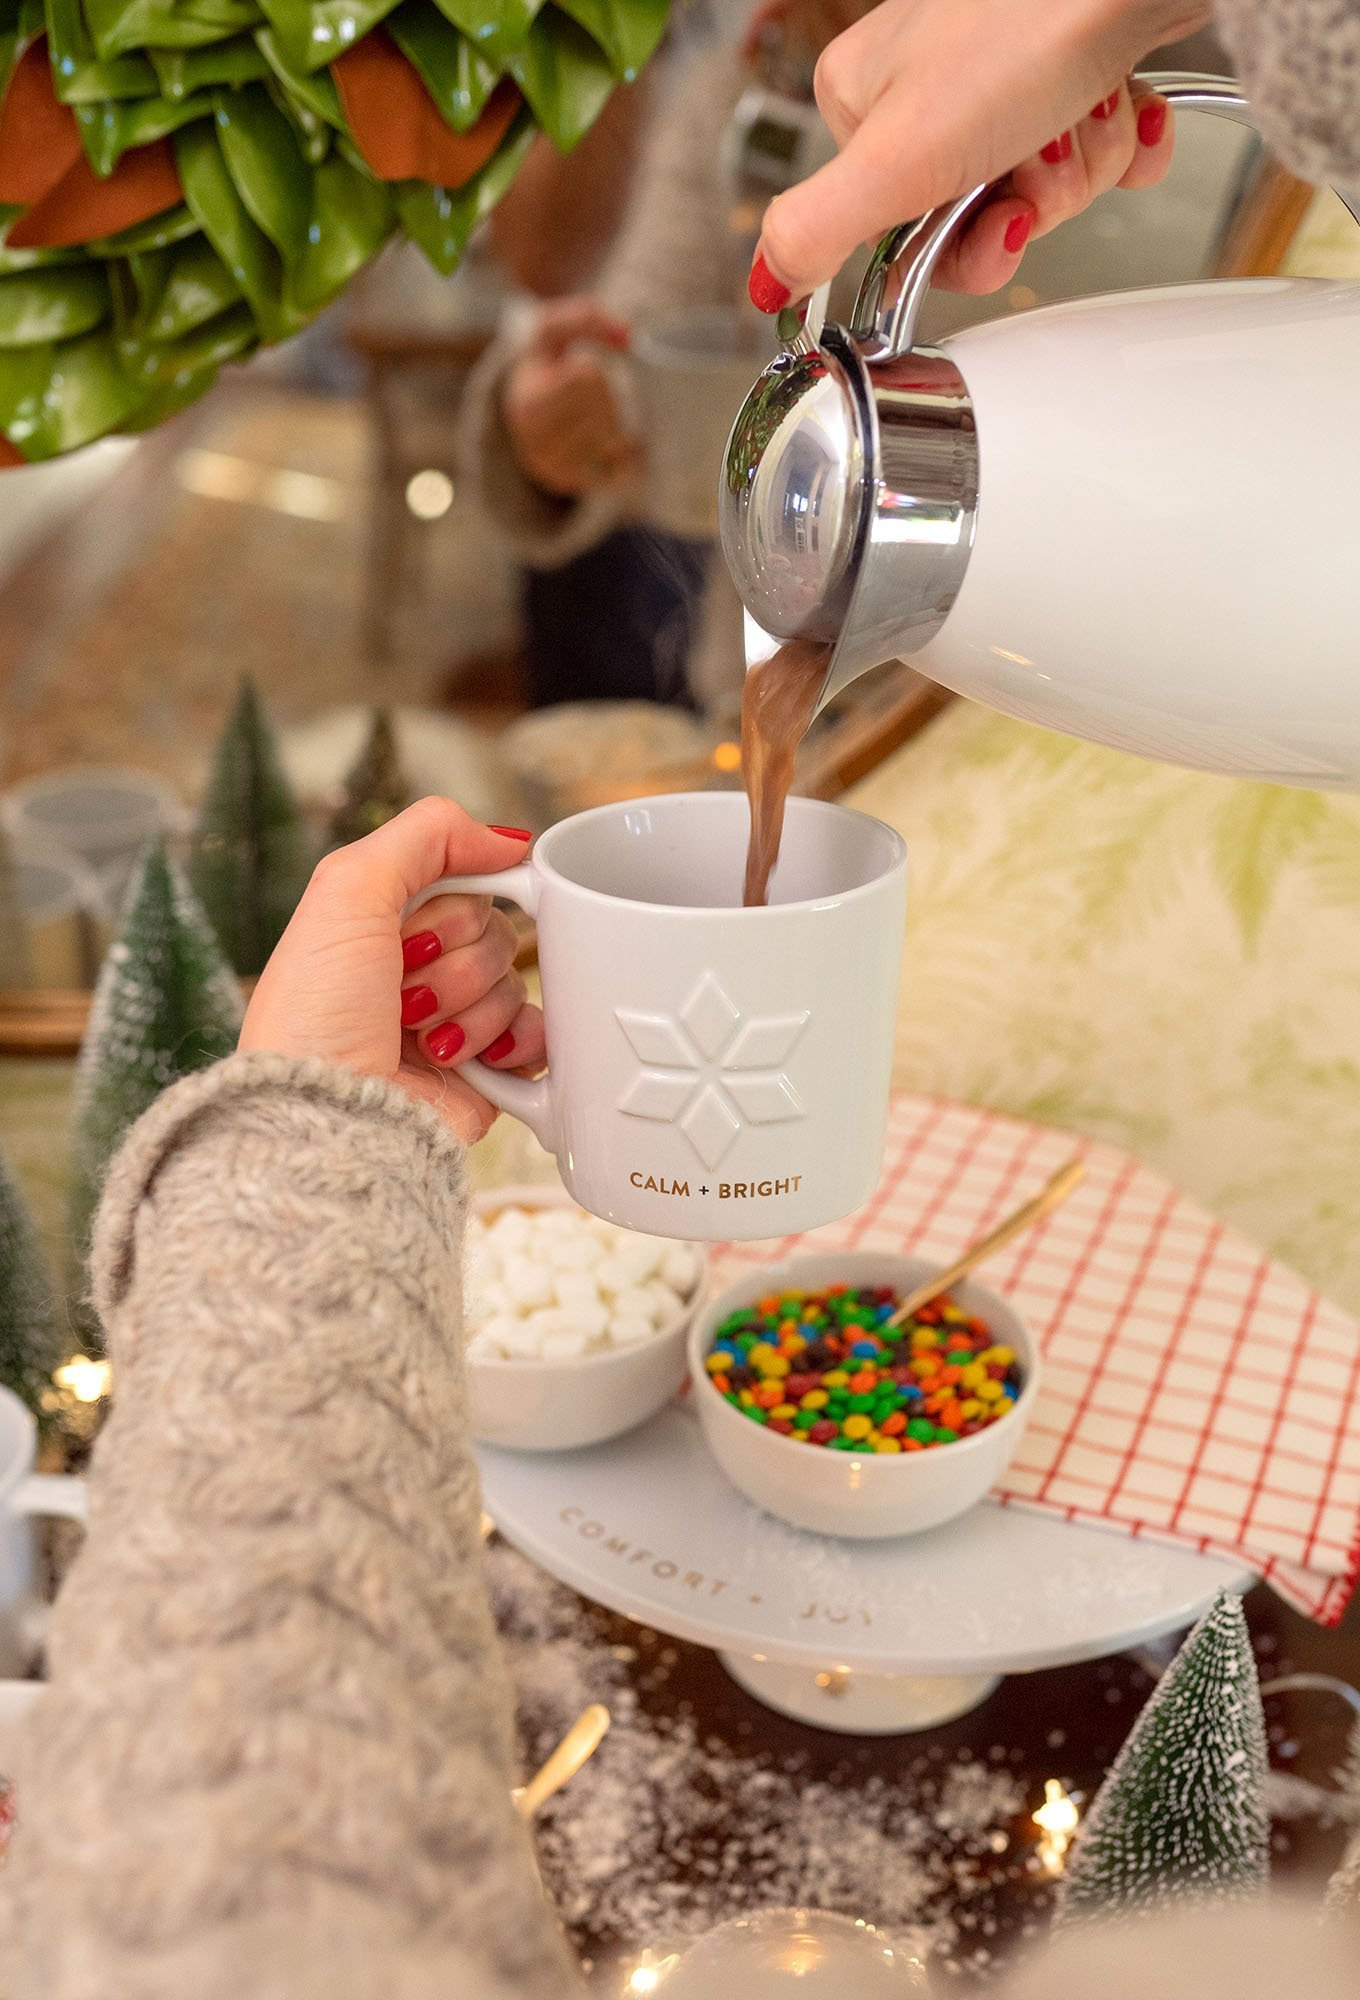 Pouring hot cocoa - Vegan hot chocolate recipe by Ashley Brooke